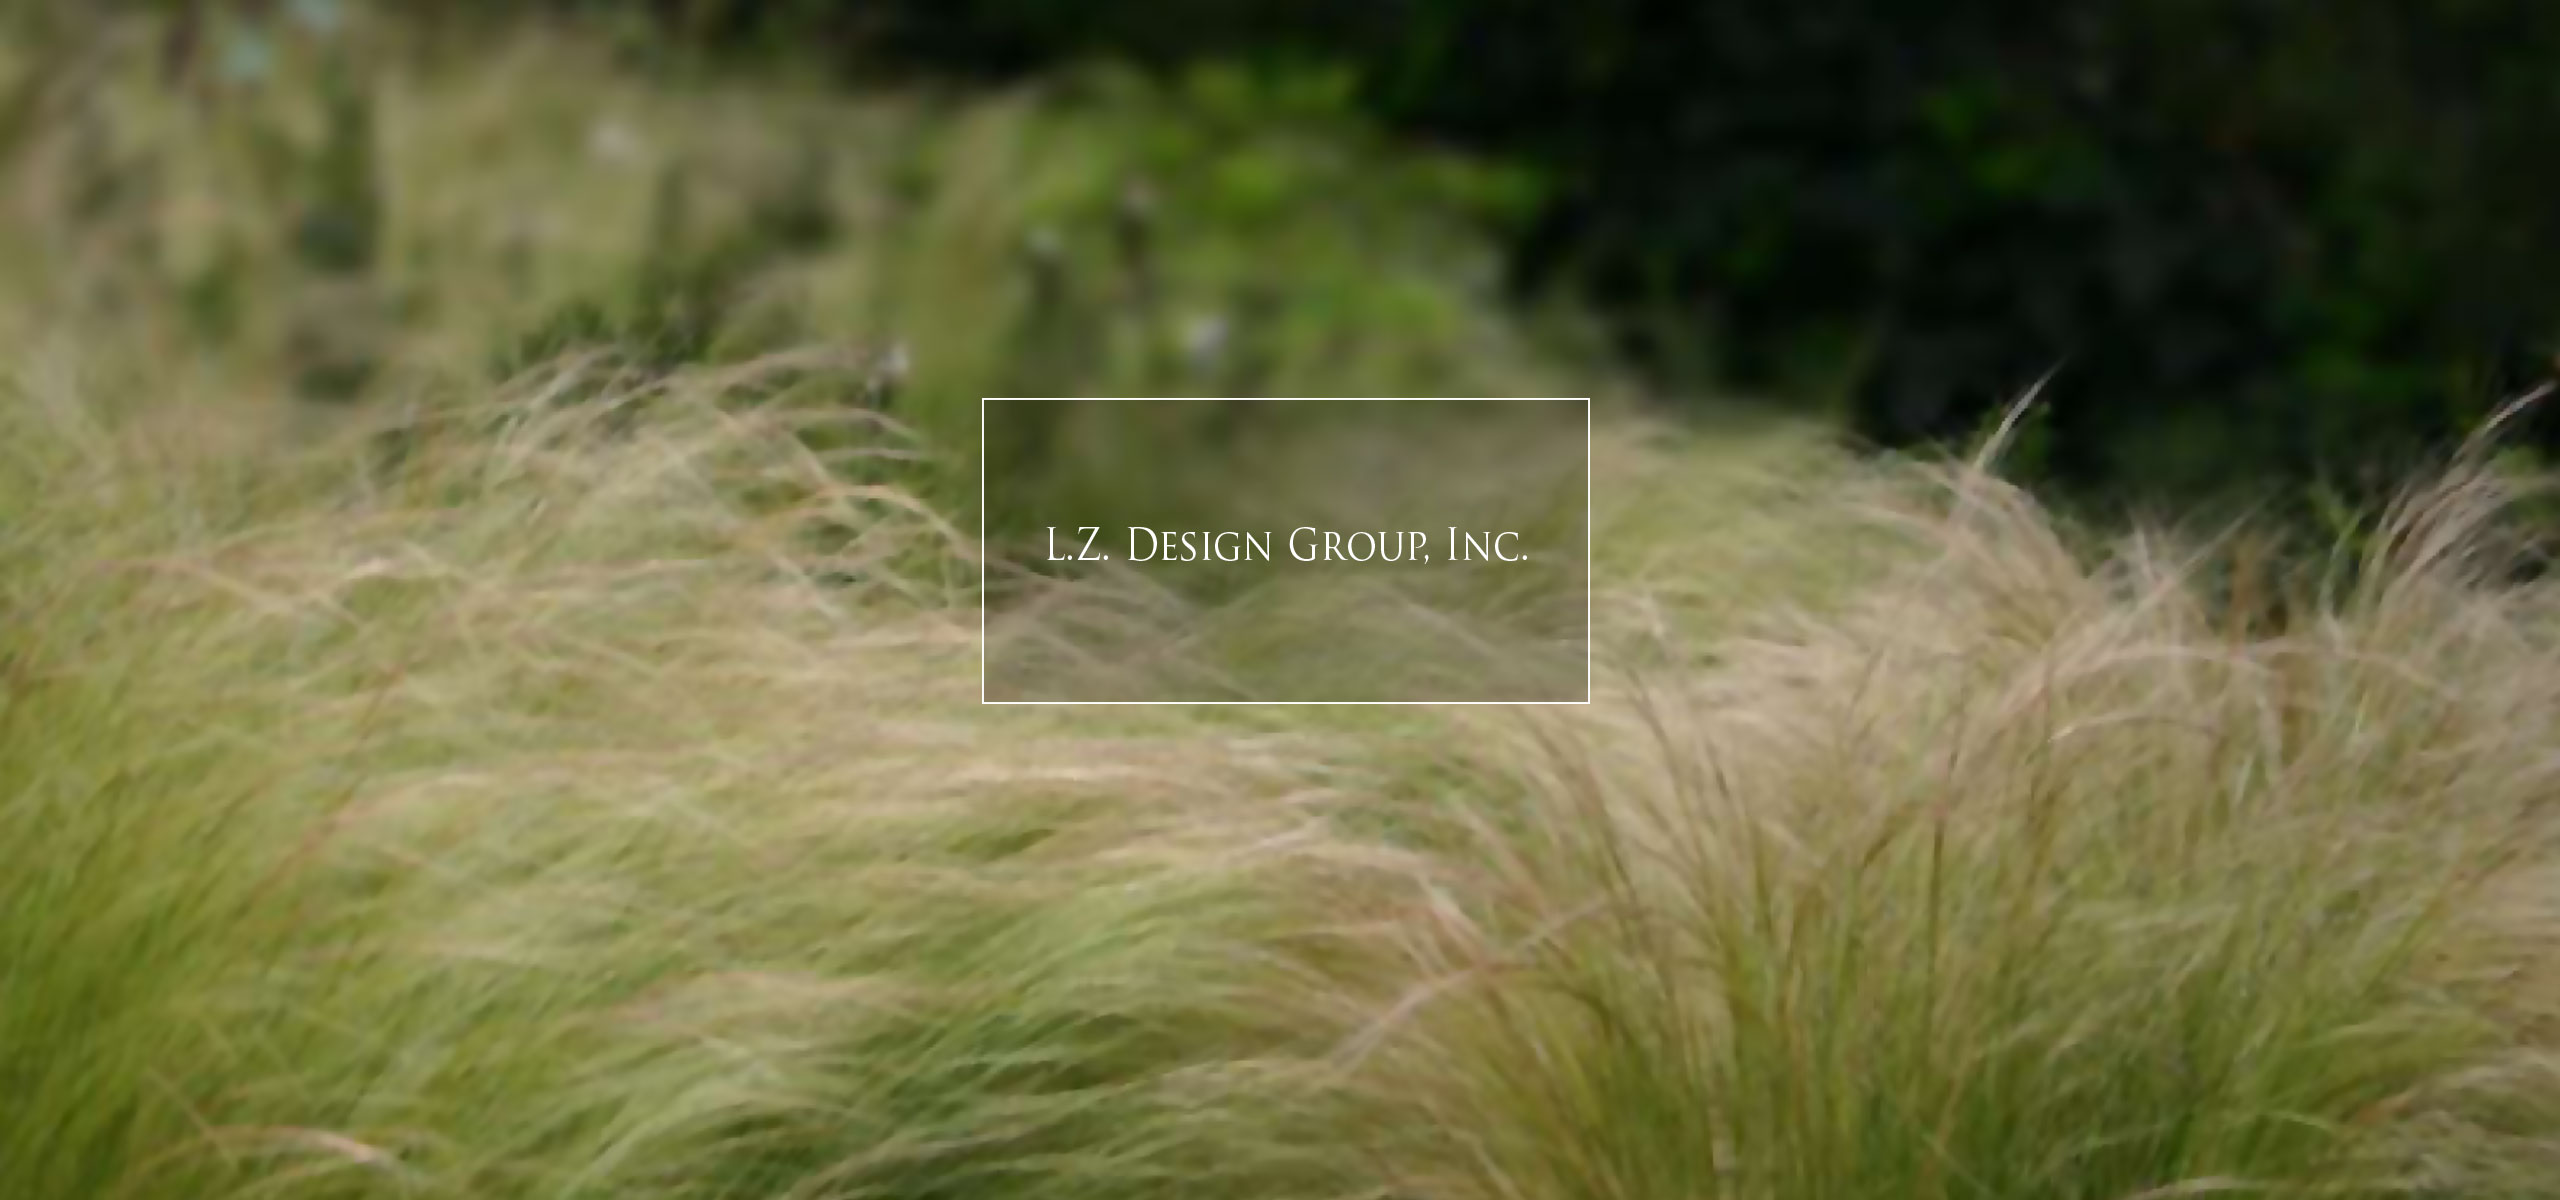 L.Z. Design Group, Inc.